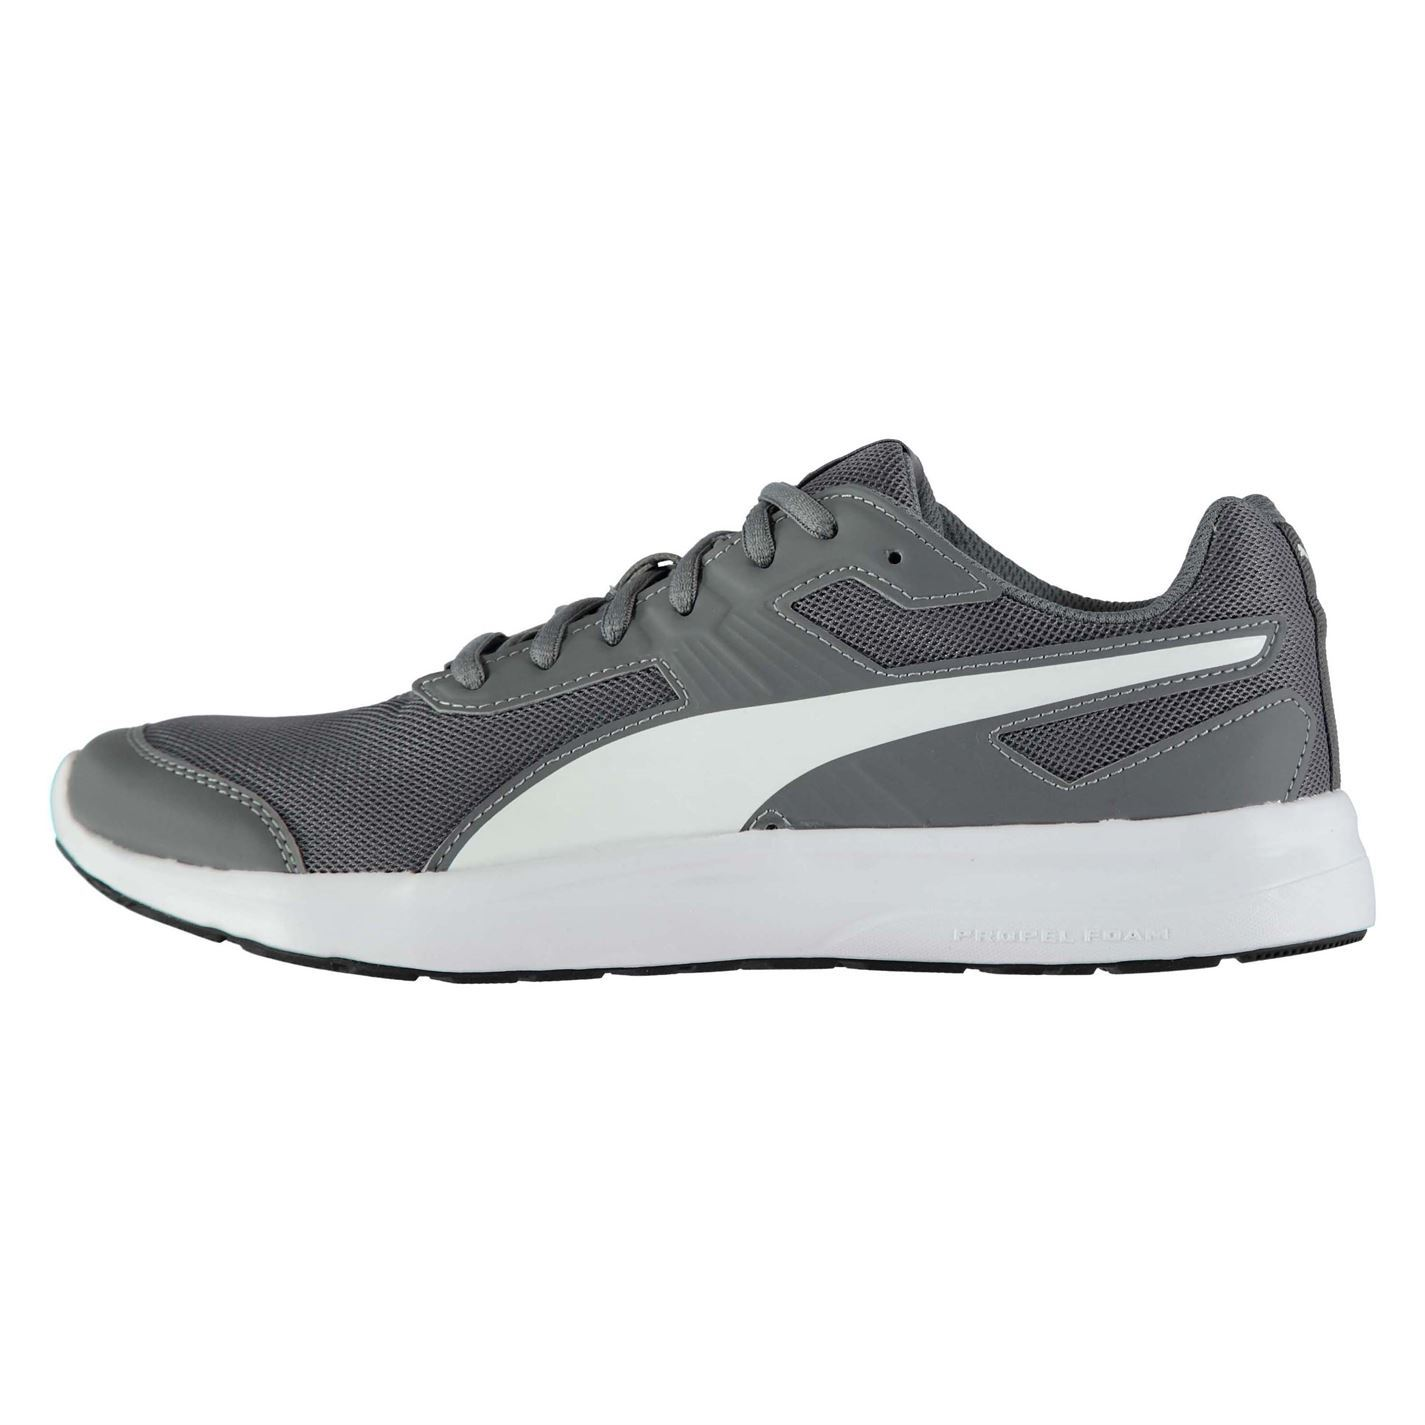 5c76012c5 Puma Escaper Mesh Trainers Athletic Hombre Negro/Blanco Athletic Trainers  Sneakers Zapatos f6819a